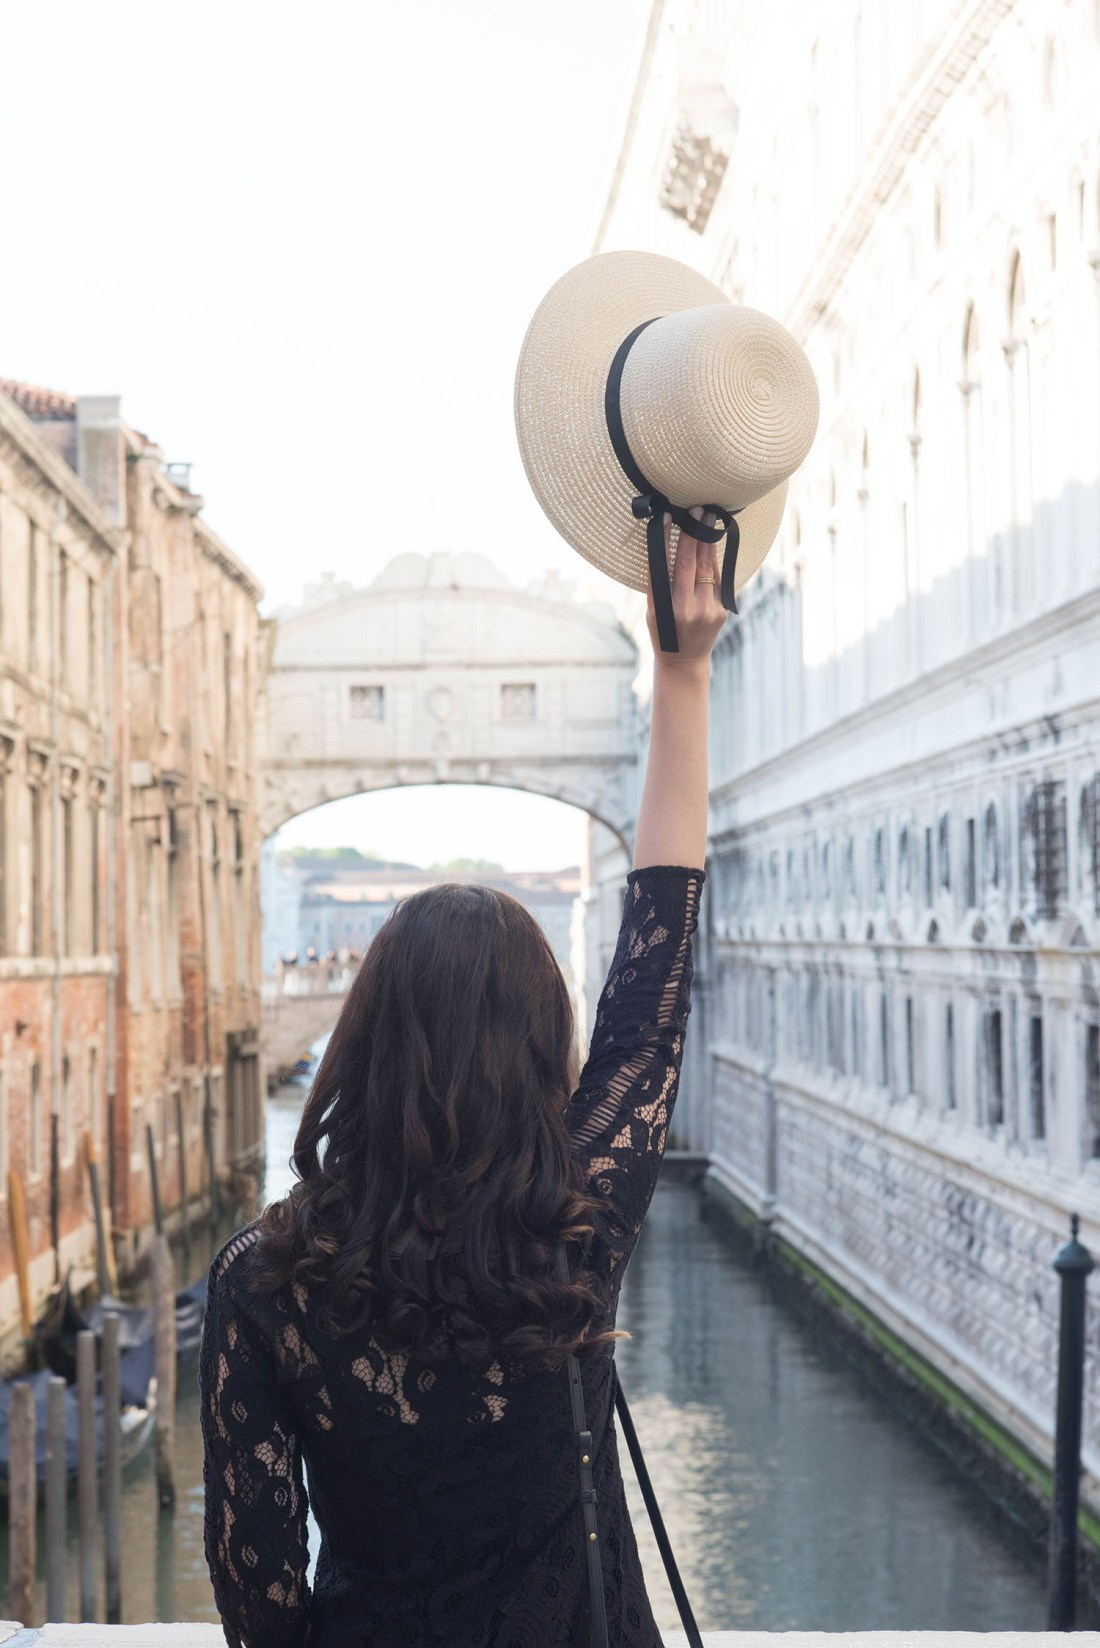 Canadian fashion blogger Cee Fardoe of Coco & Vera holds up her Galeries Lafayette straw hat on a bridge in Venice